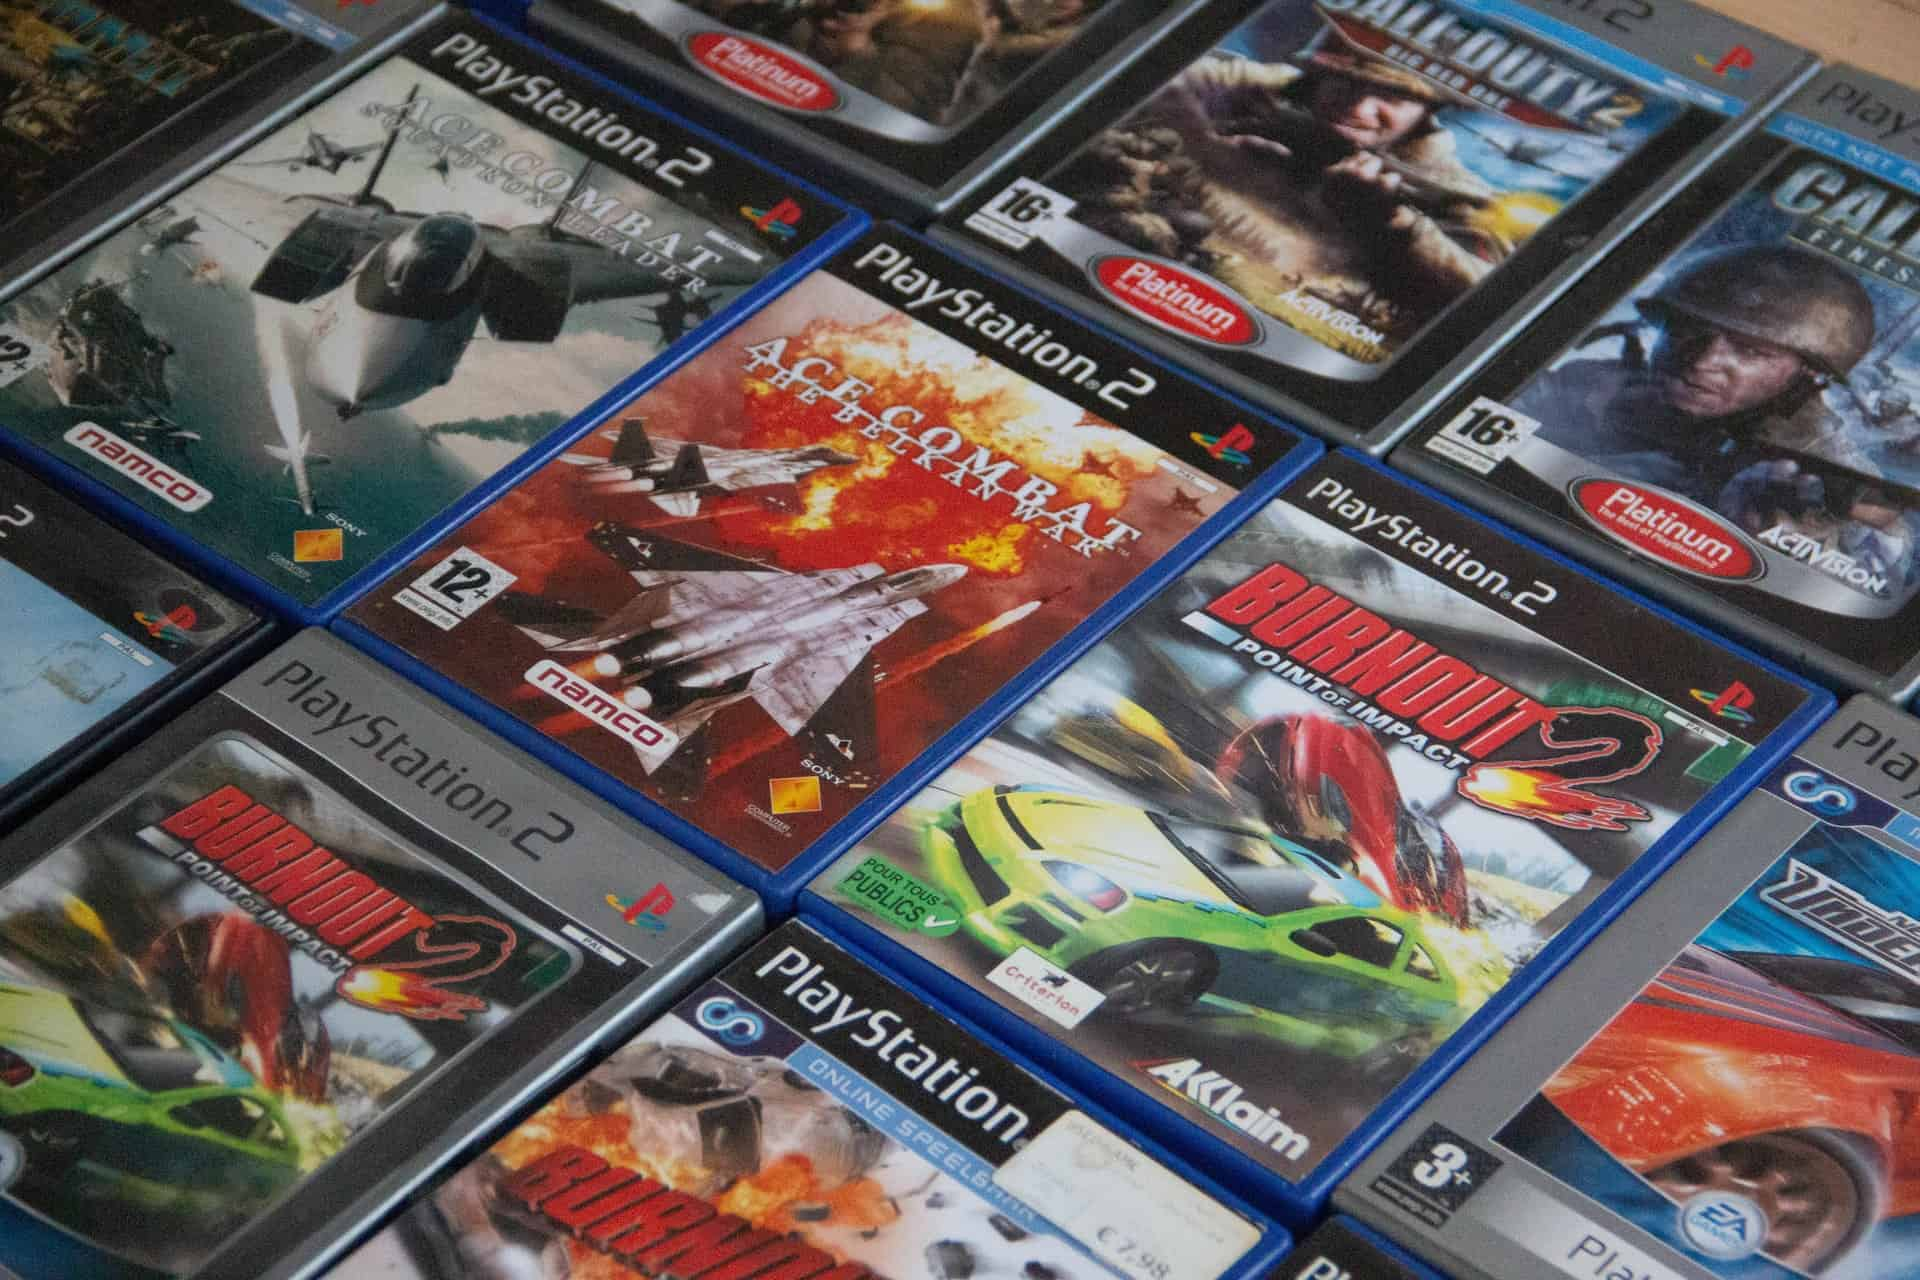 A variety of PlayStation games are arranged on a table.